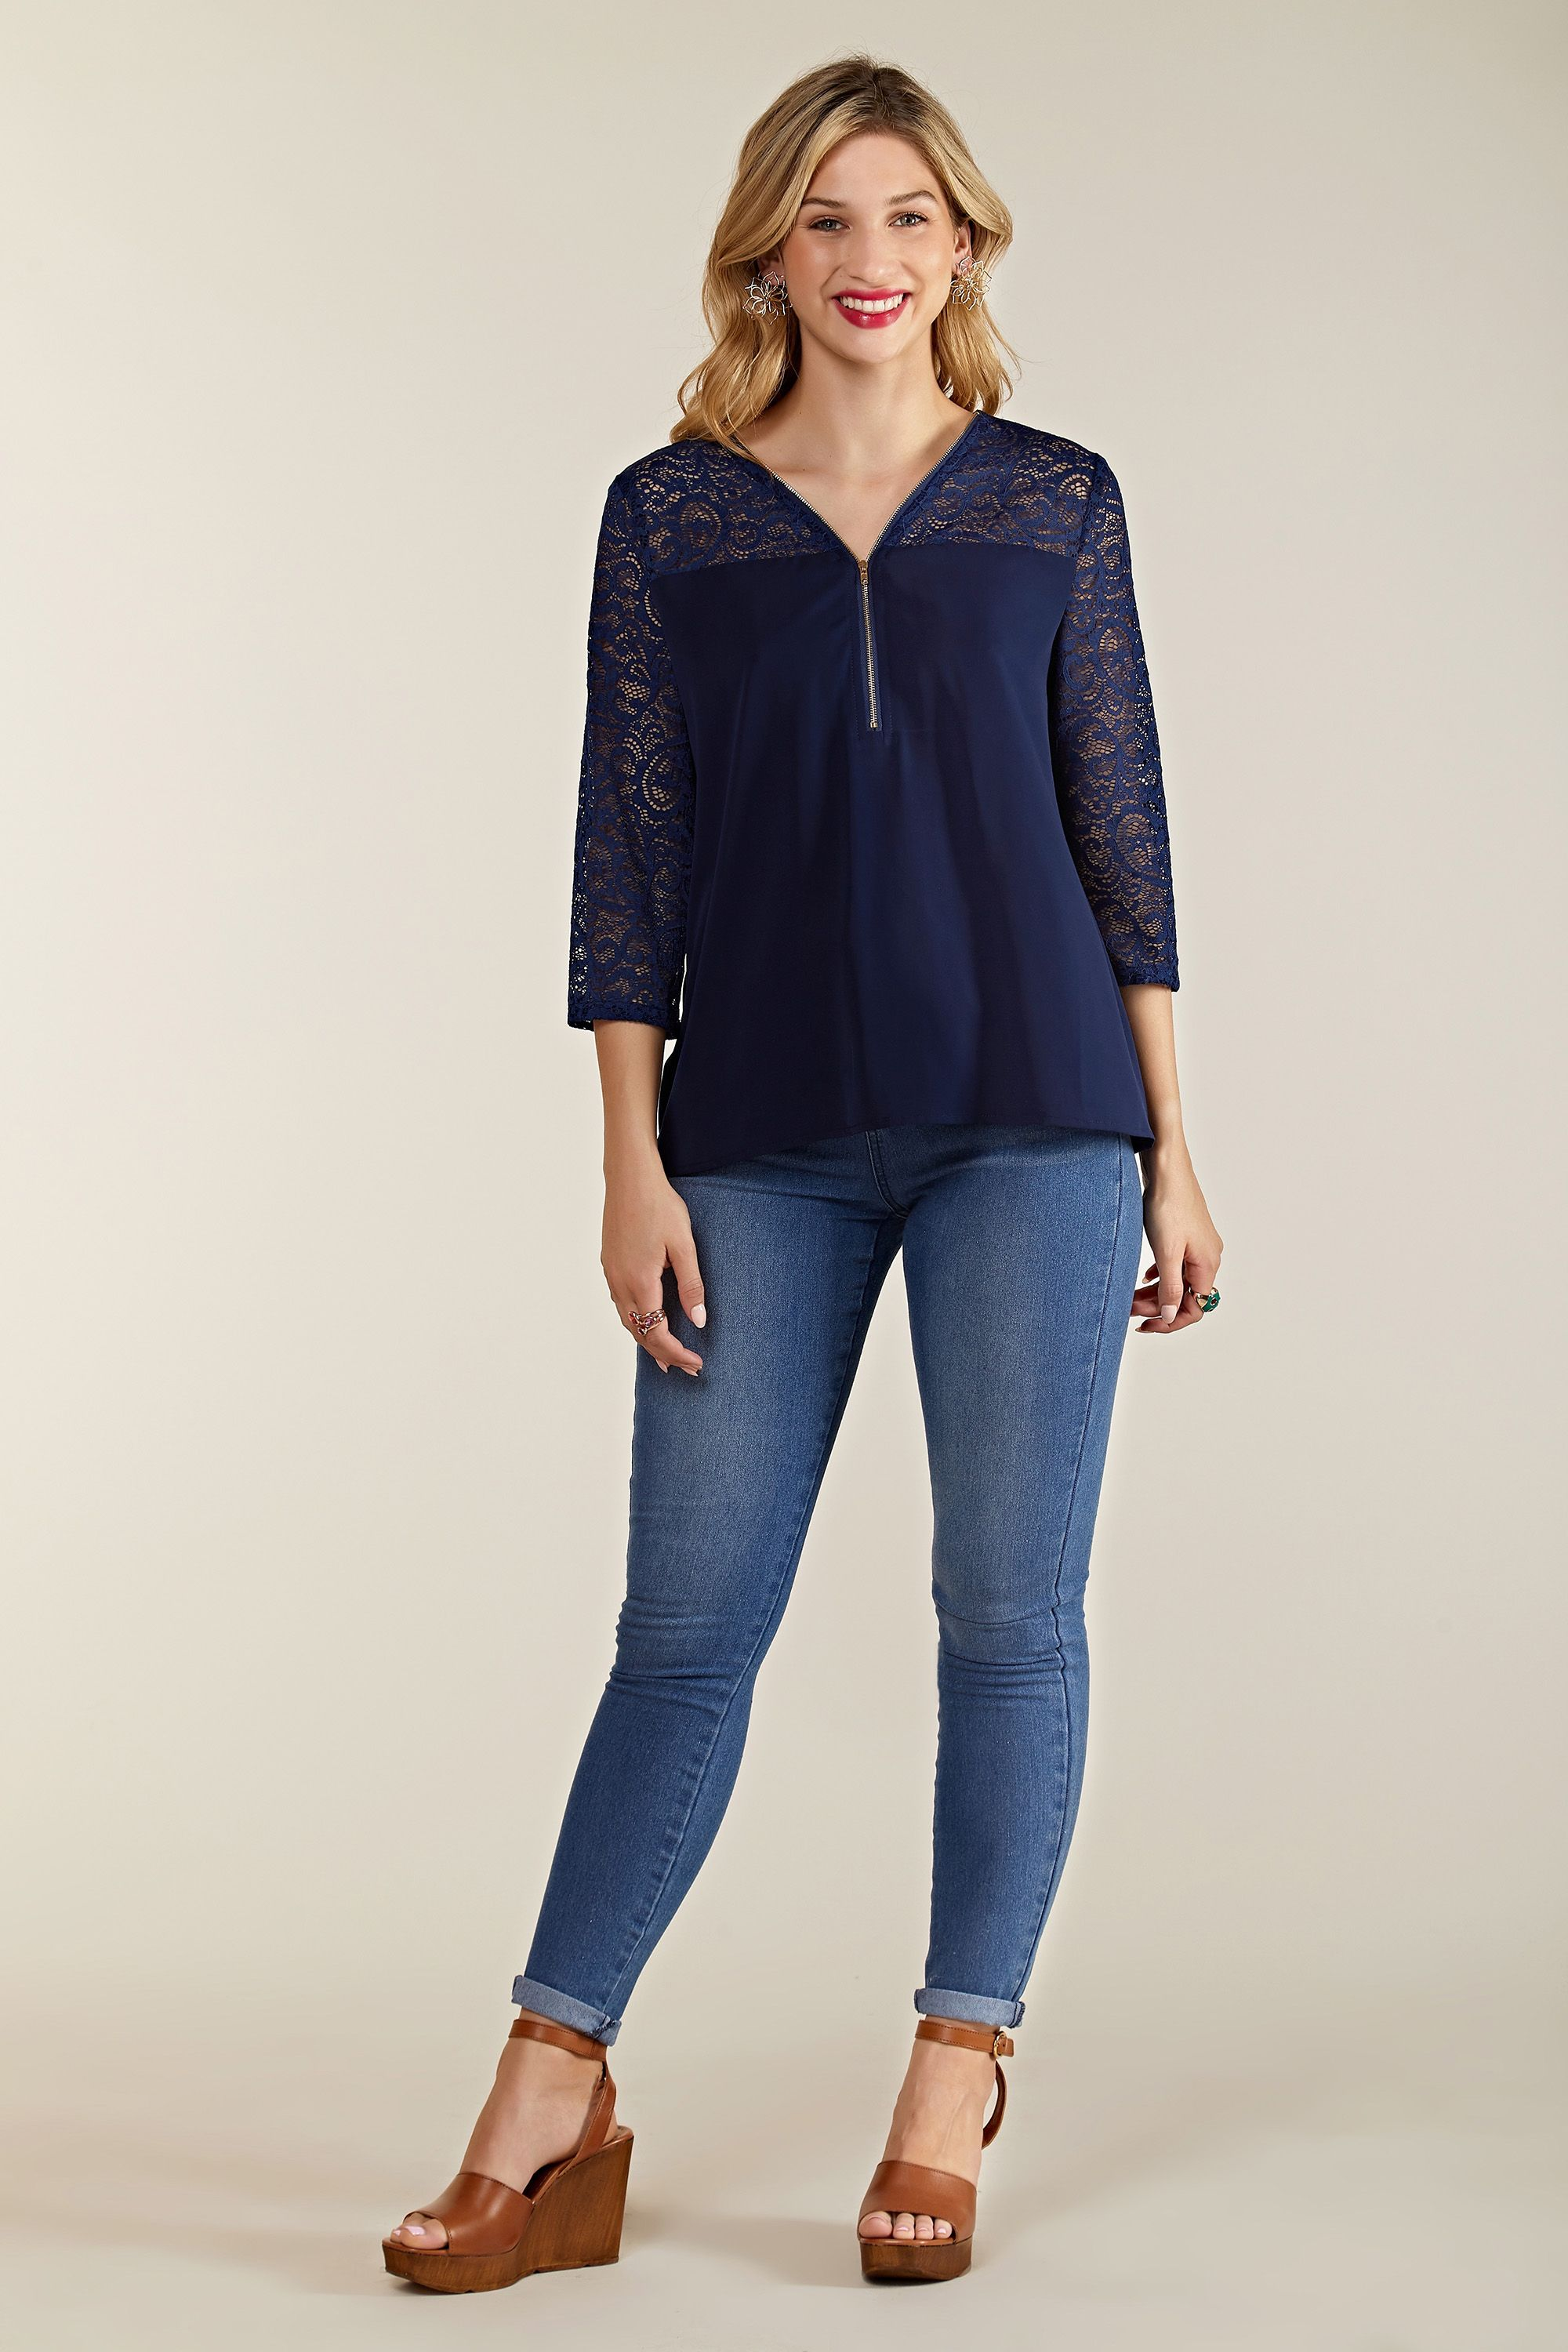 Navy Lace Top With Zip Detail